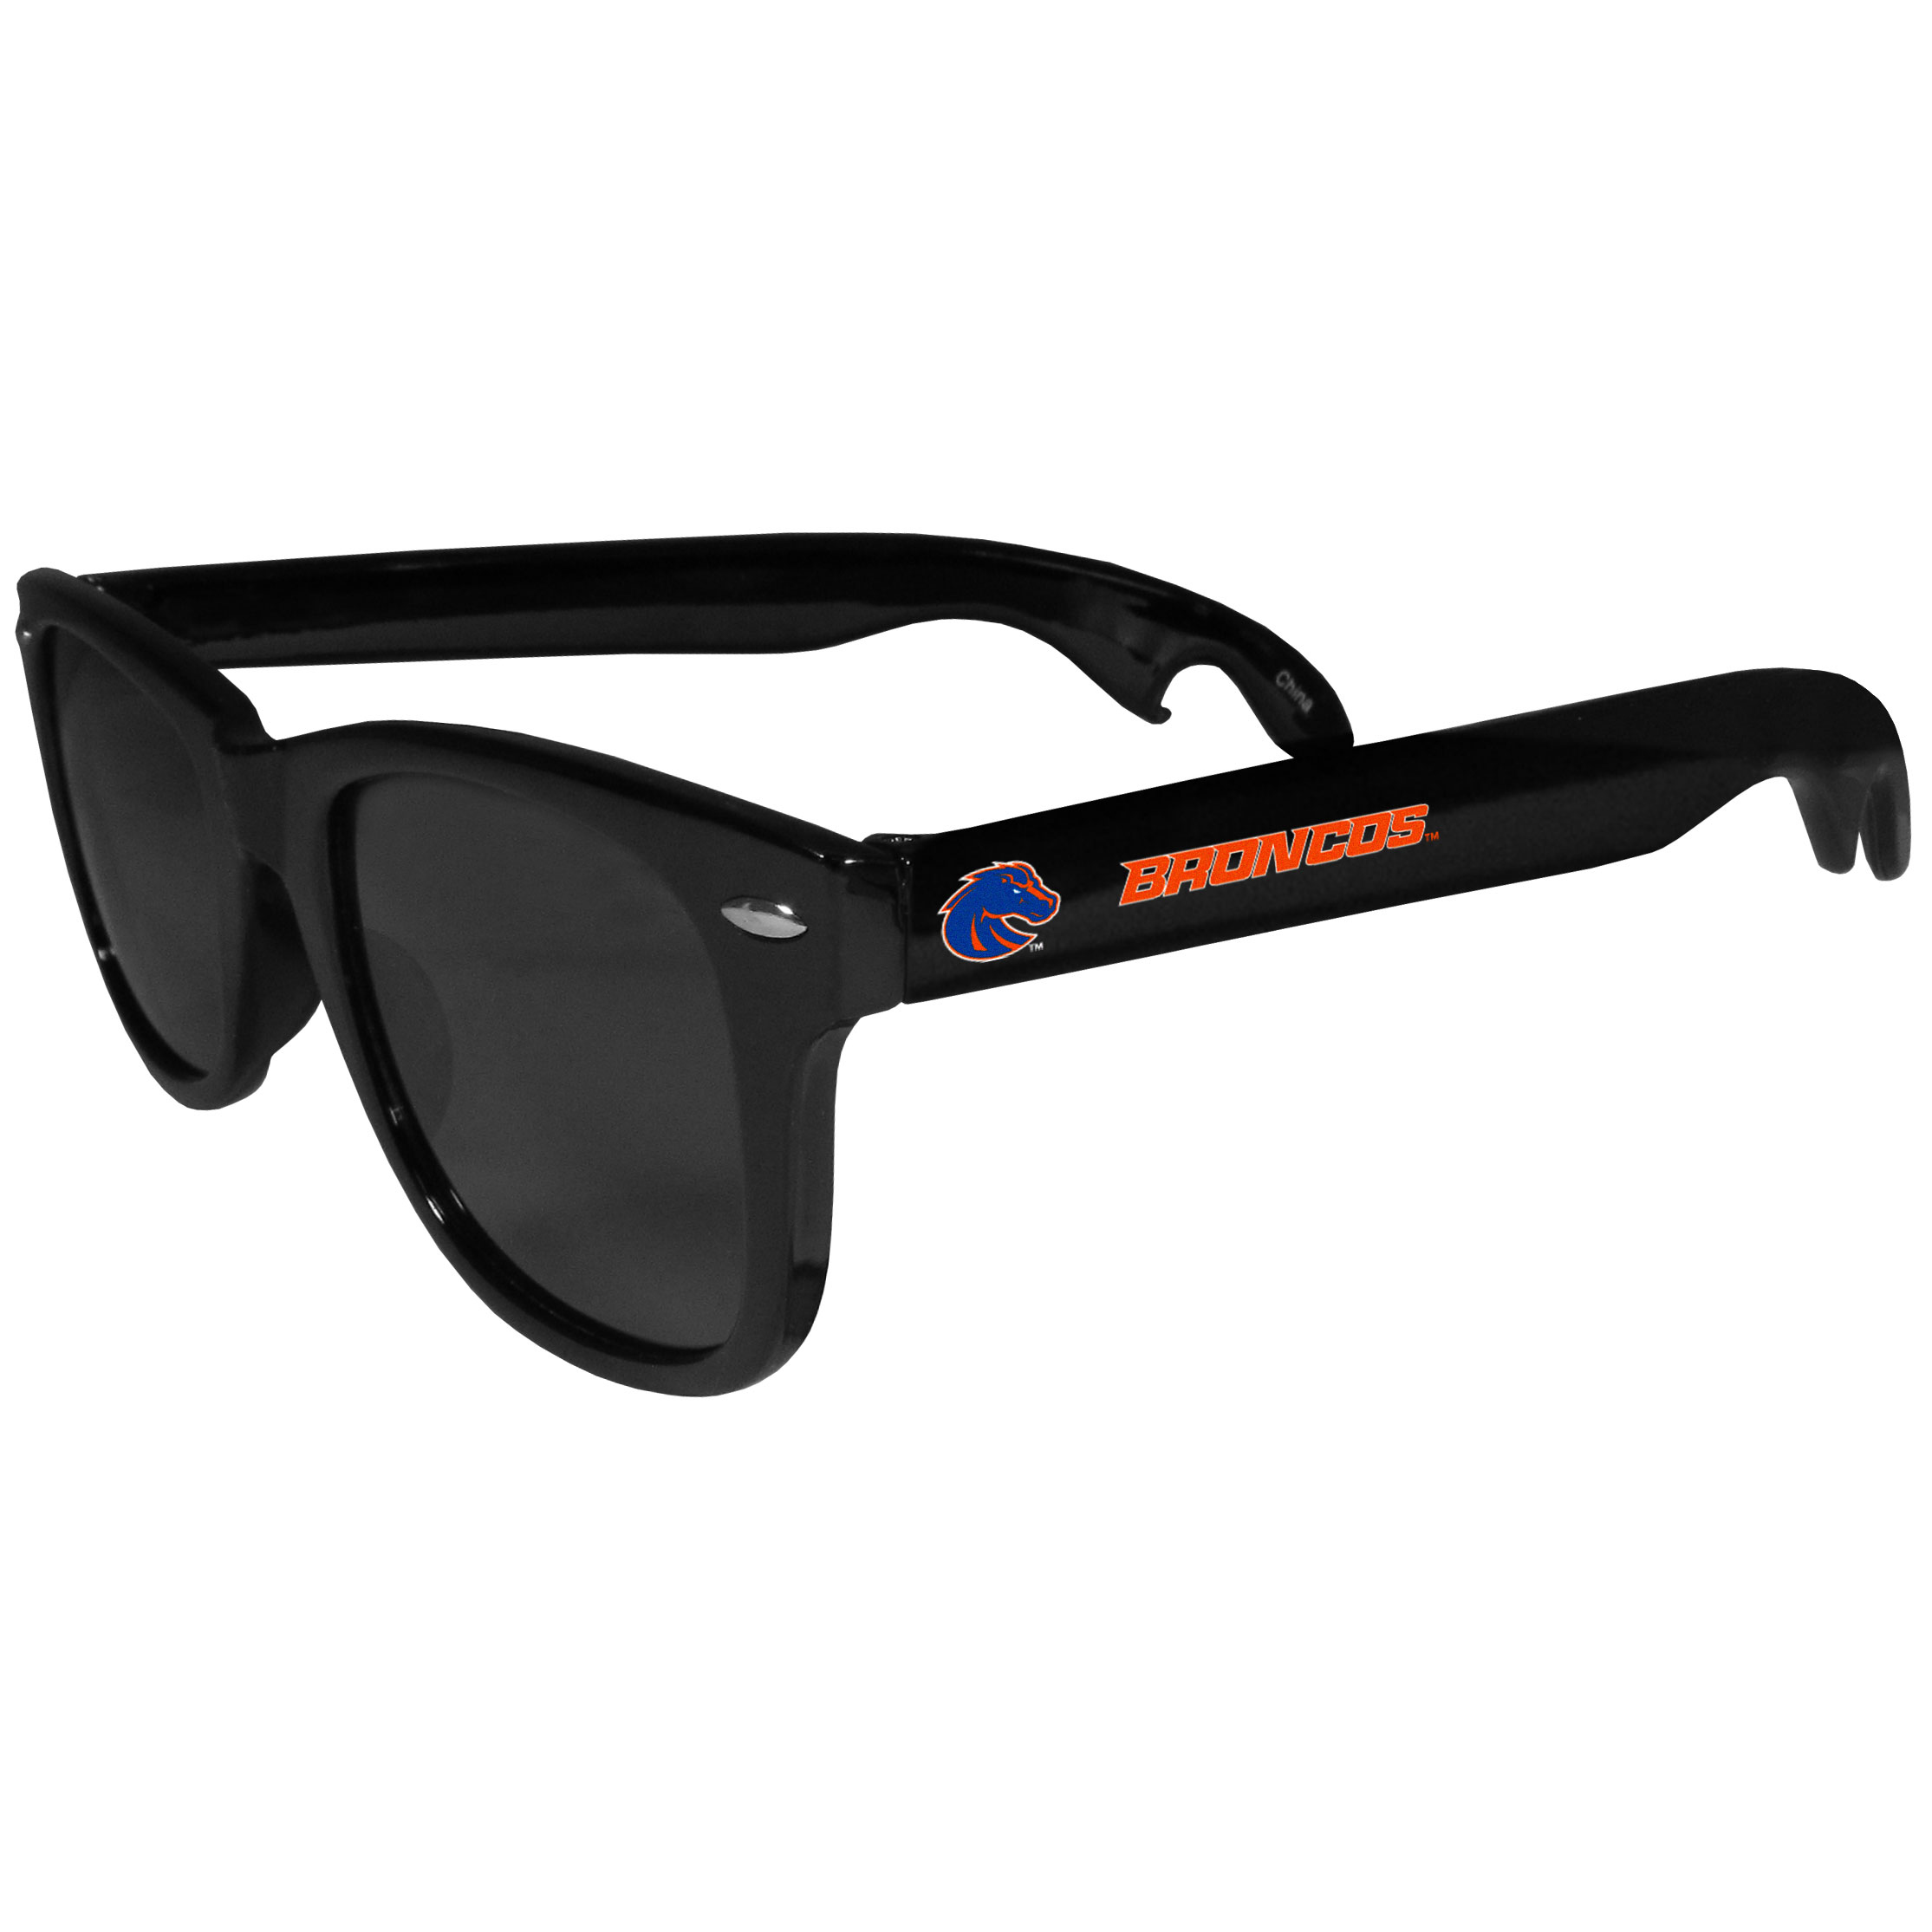 Boise St. Broncos Beachfarer Bottle Opener Sunglasses - Seriously, these sunglasses open bottles! Keep the party going with these amazing Boise St. Broncos bottle opener sunglasses. The stylish retro frames feature team designs on the arms and functional bottle openers on the end of the arms. Whether you are at the beach or having a backyard BBQ on game day, these shades will keep your eyes protected with 100% UVA/UVB protection and keep you hydrated with the handy bottle opener arms.